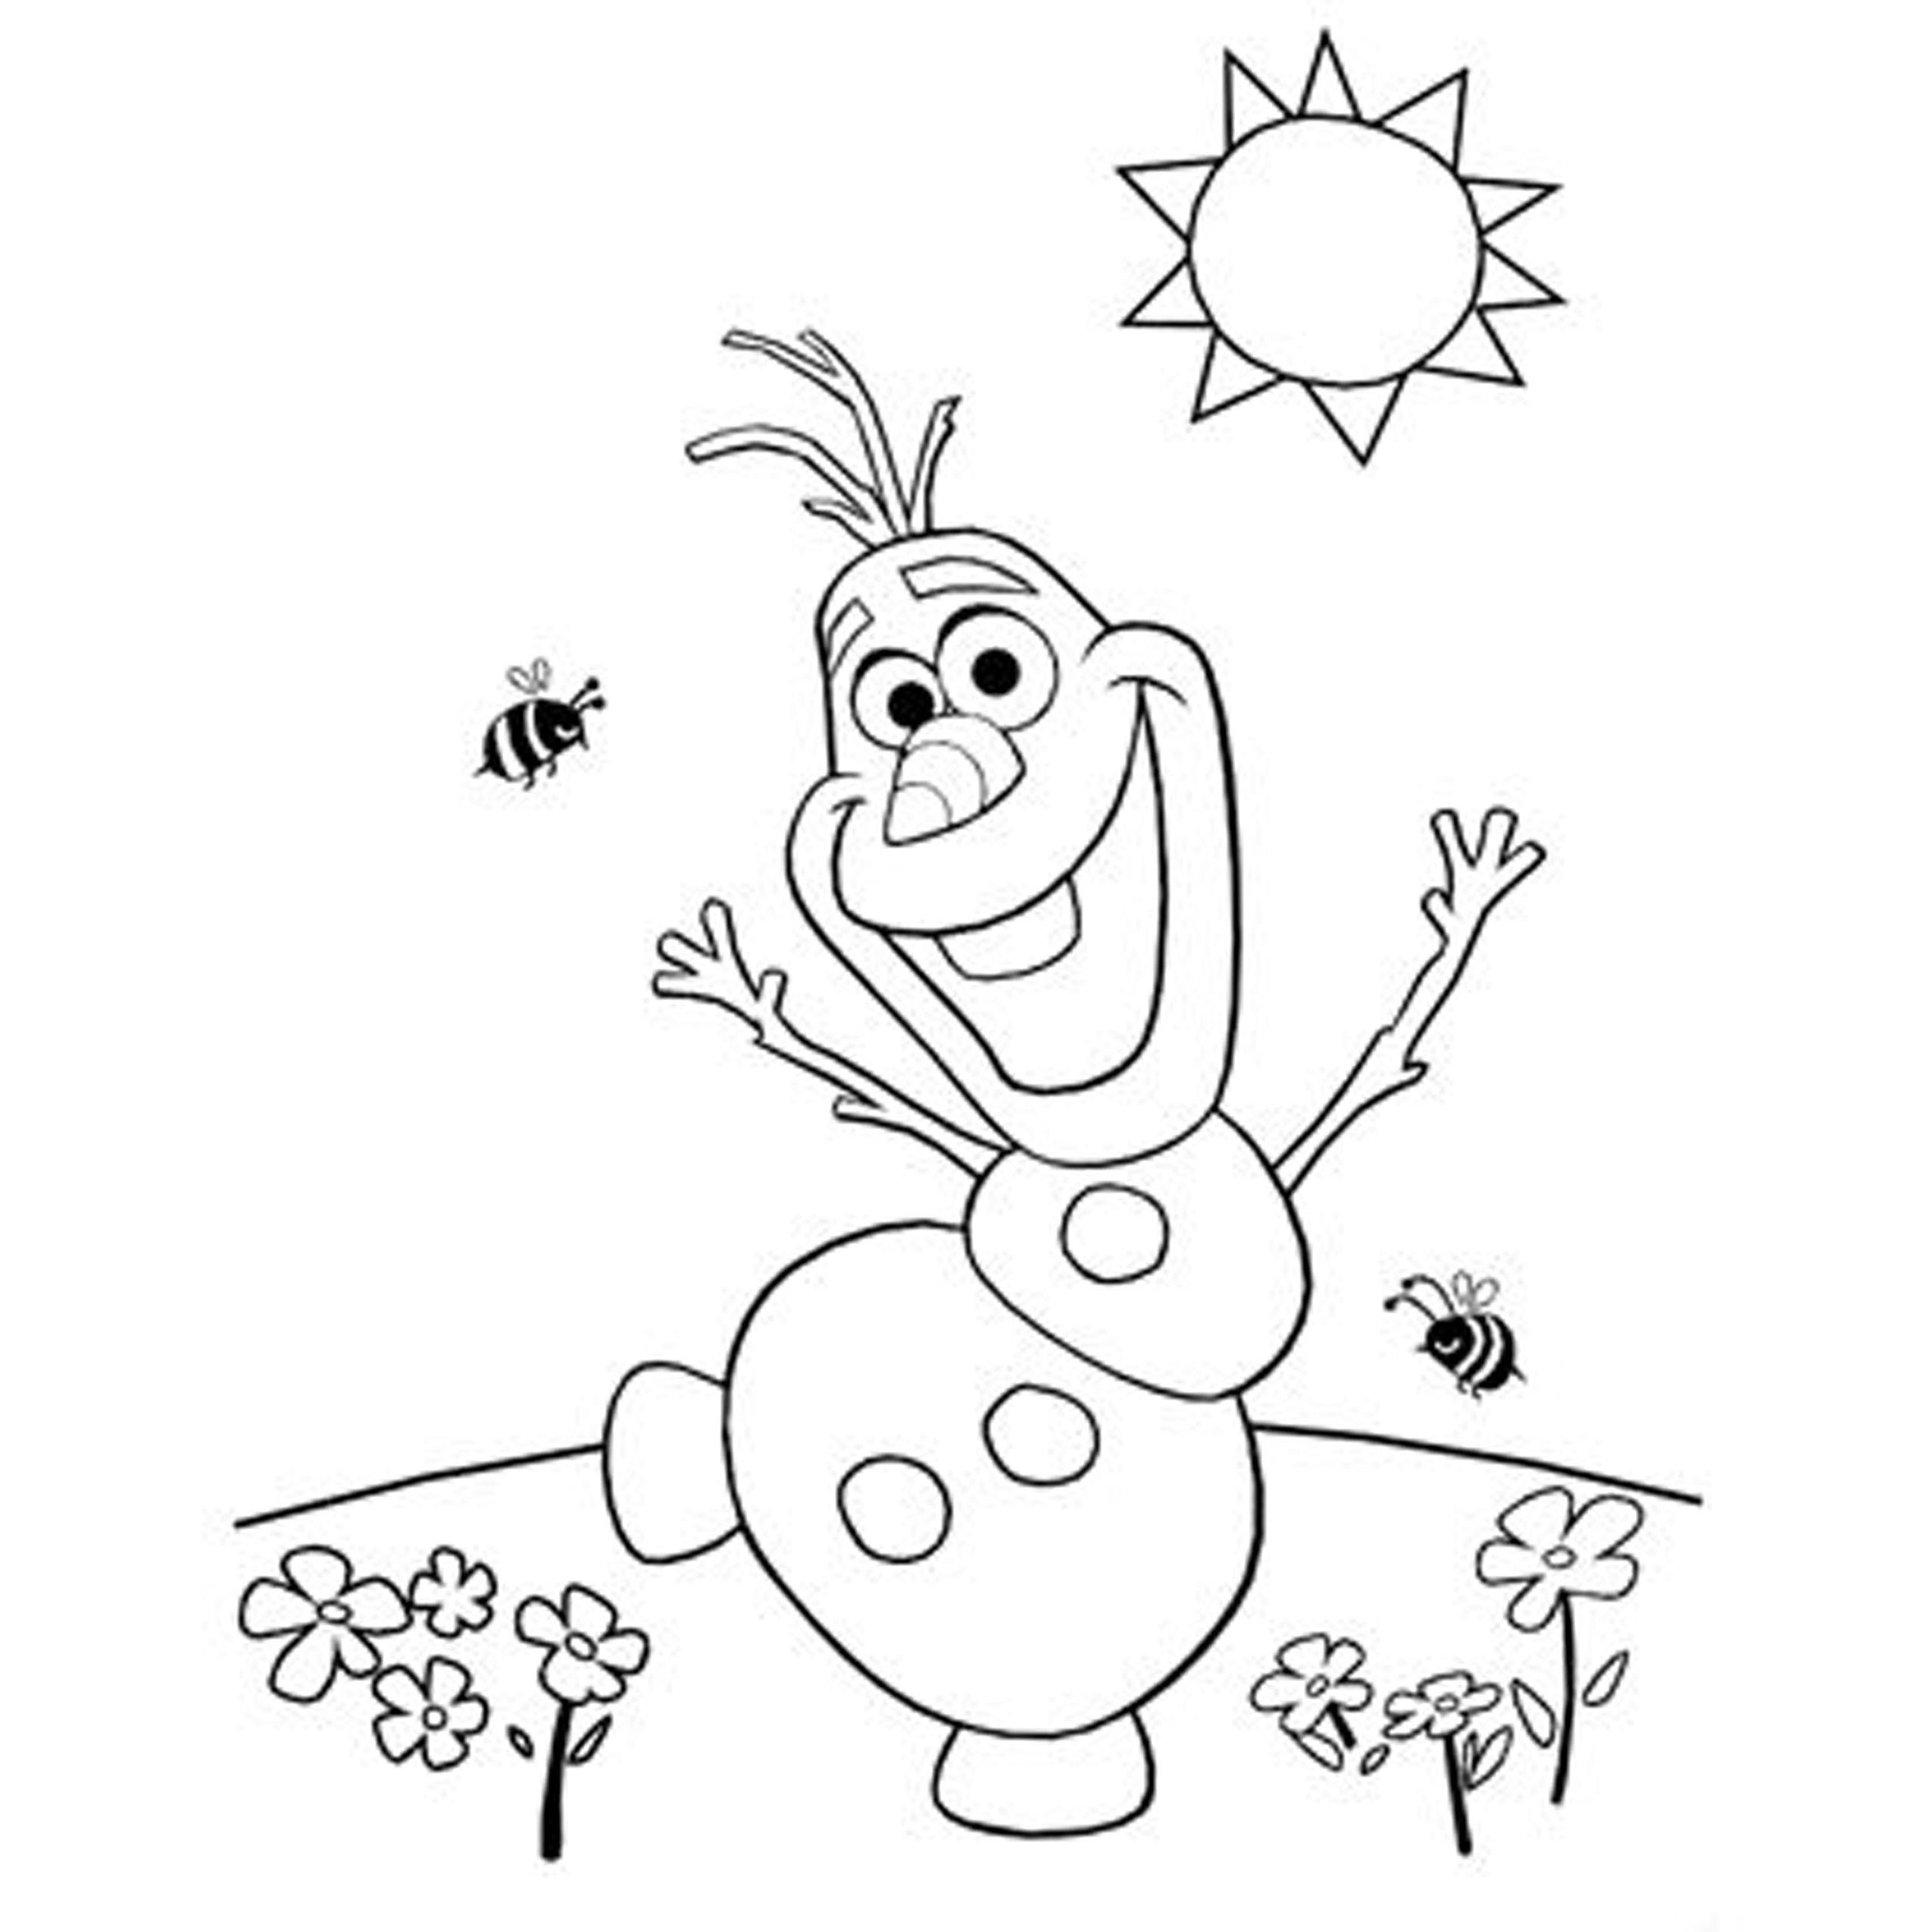 2550x2550 Excellent Olaf The Snowman Coloring Pages Fresh In Summer Big